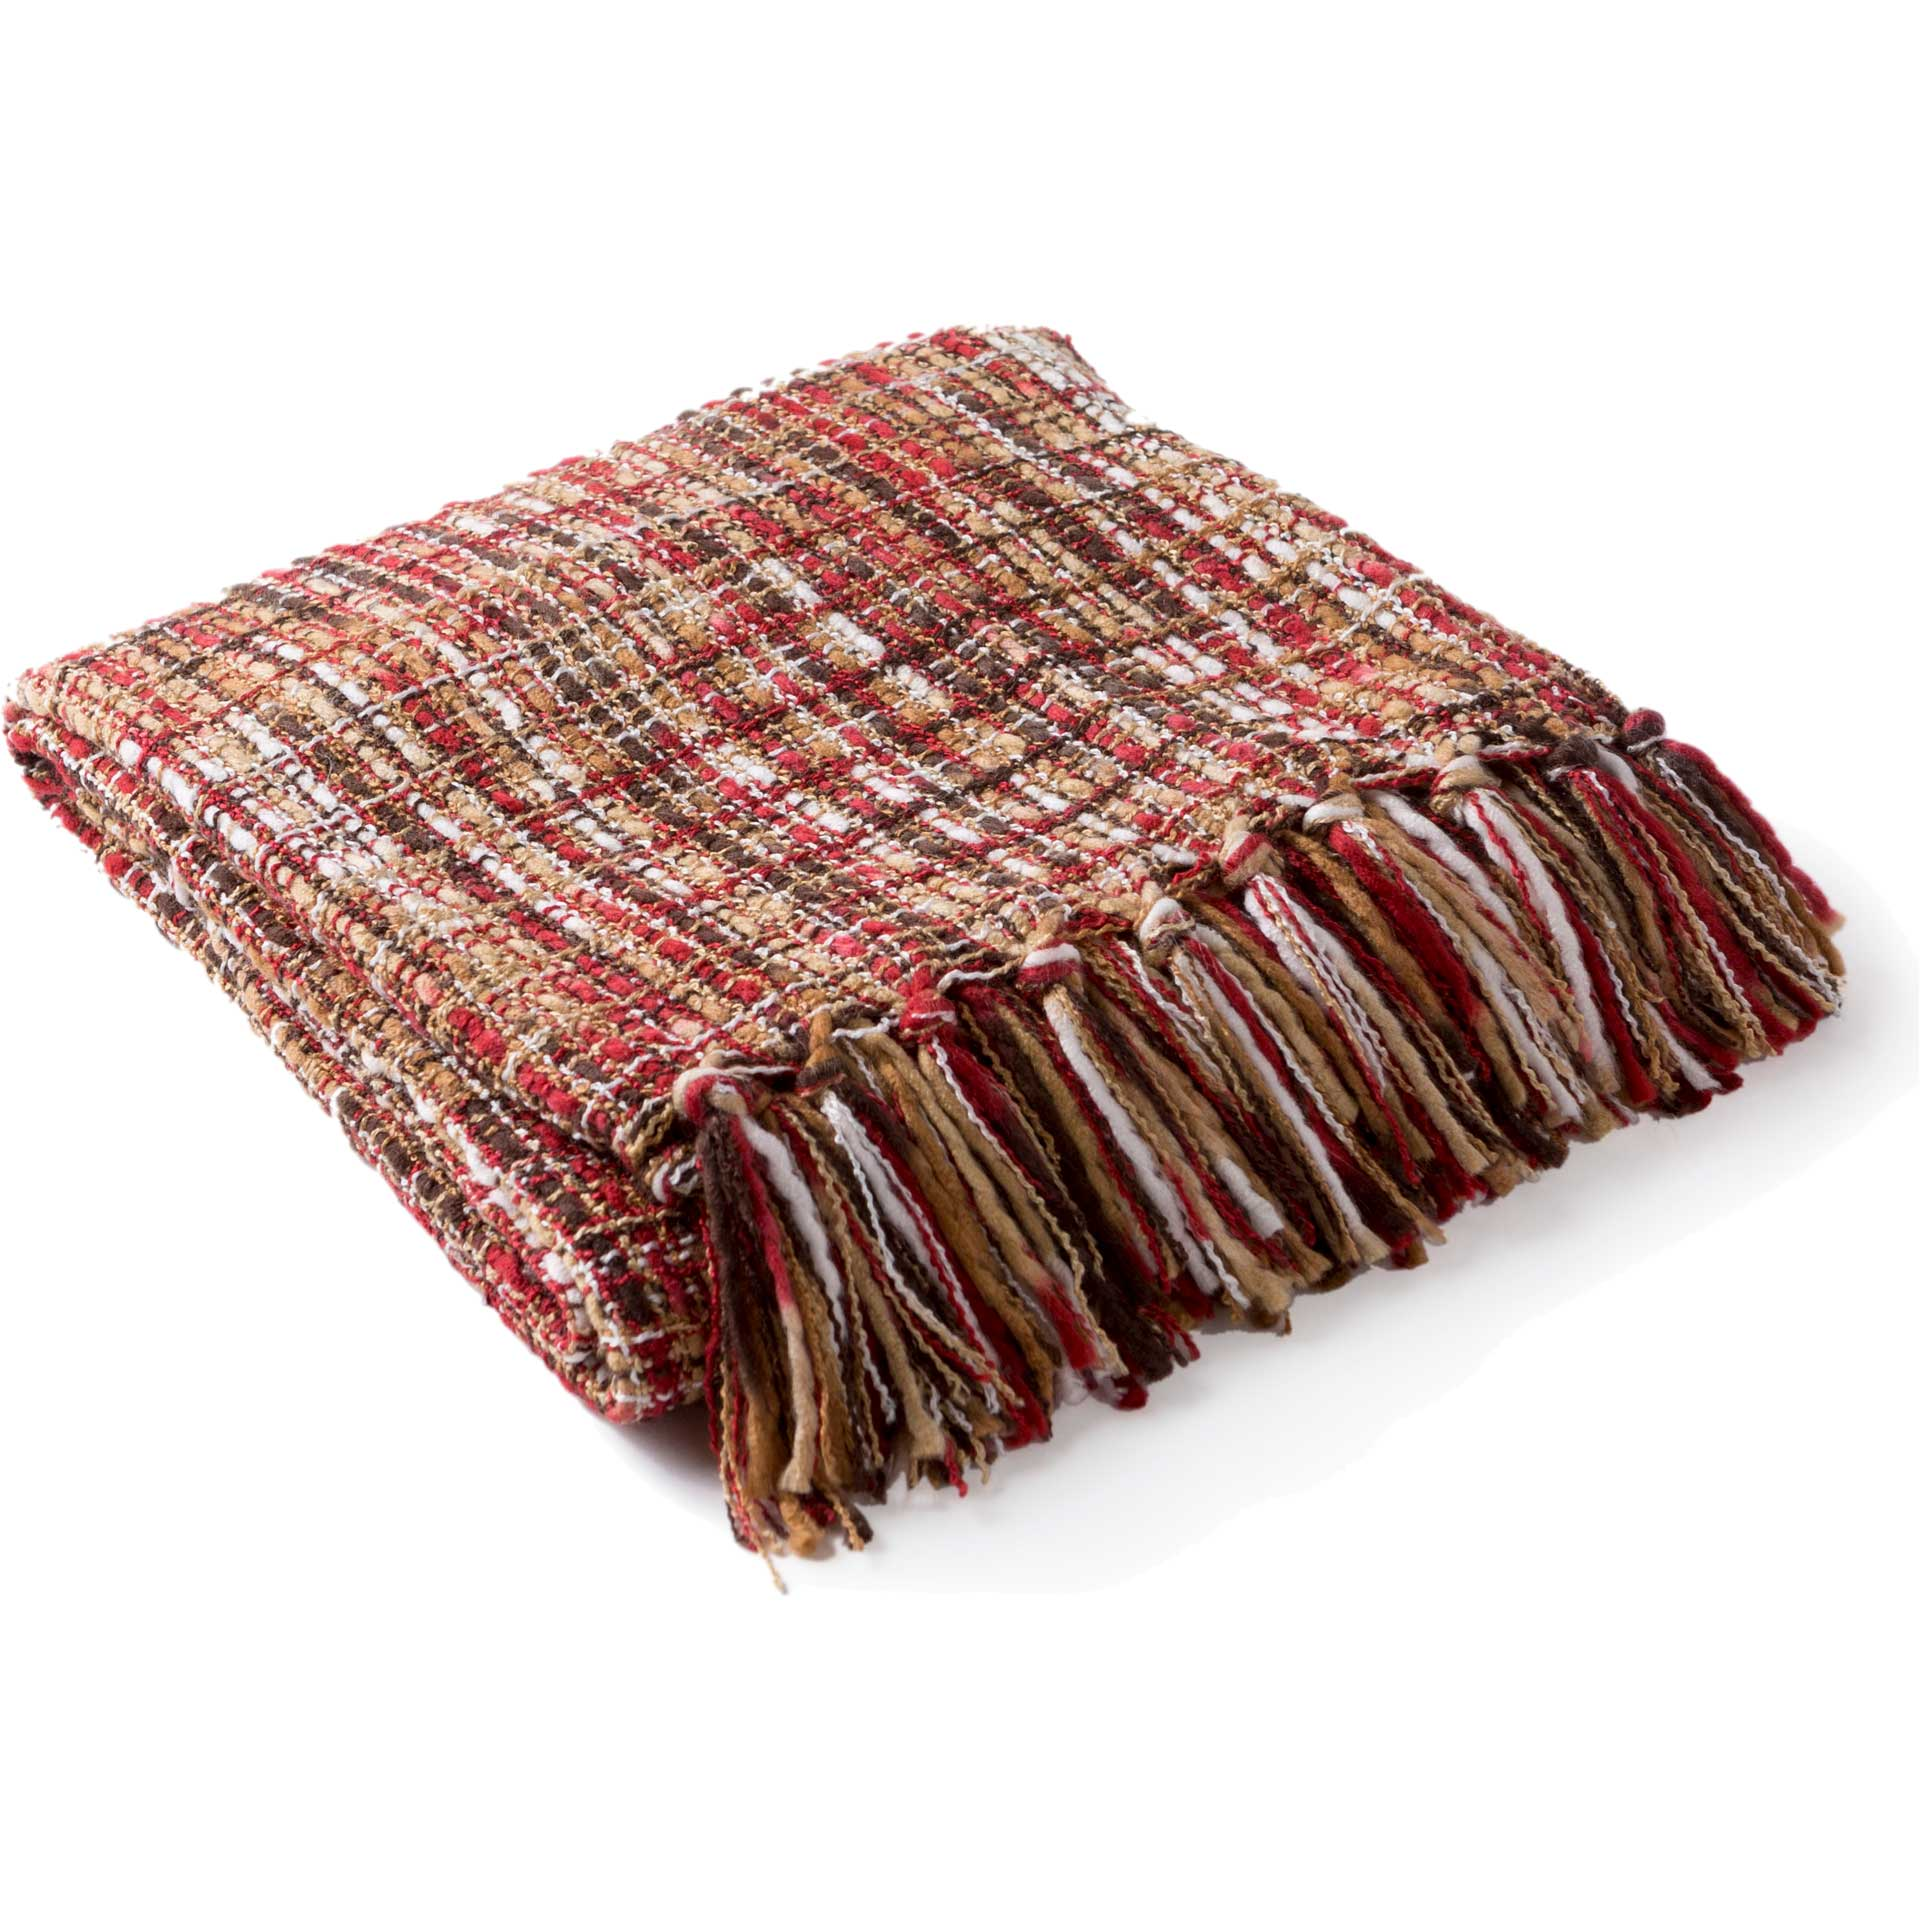 Tajhari Throw Bright Red/Tan/White